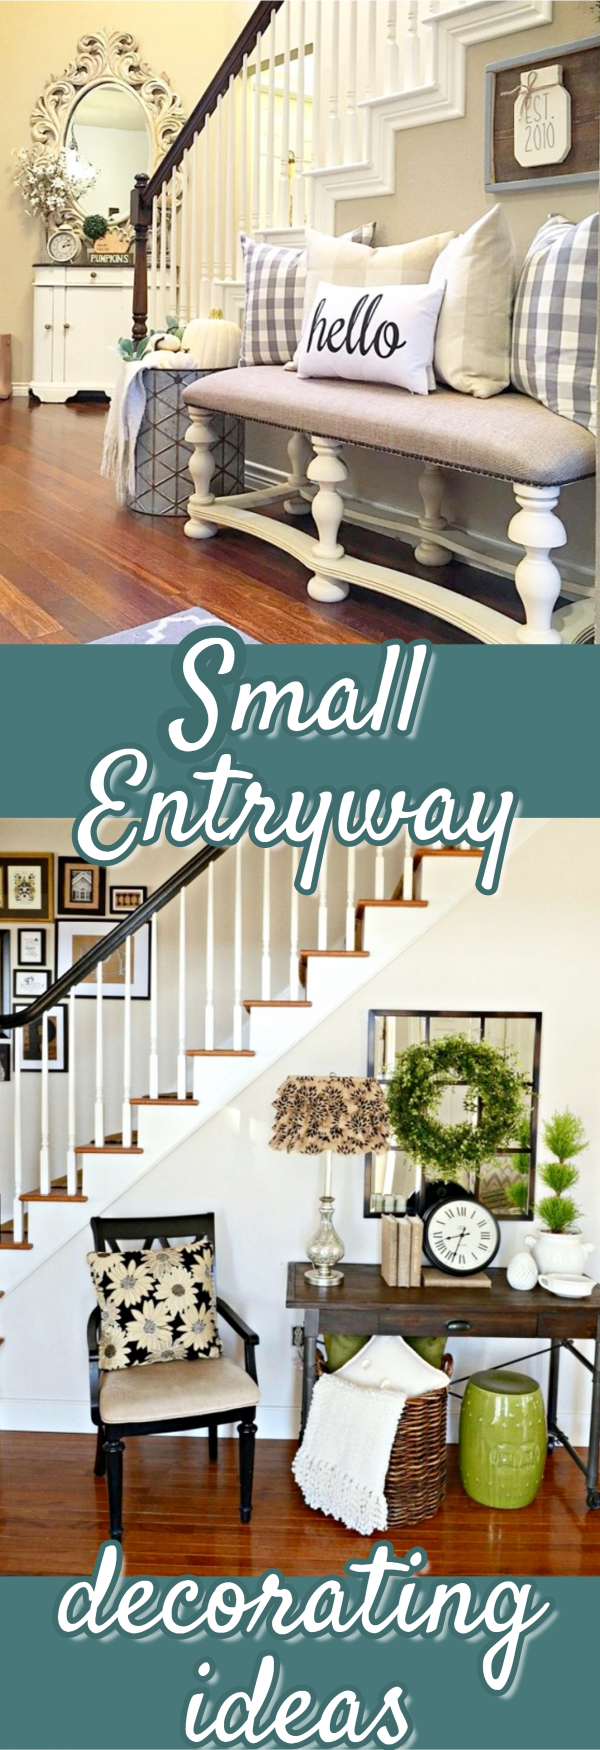 Small Foyer Decorating Ideas   How To Decorate A Small Foyer Or Apartment  Entryway